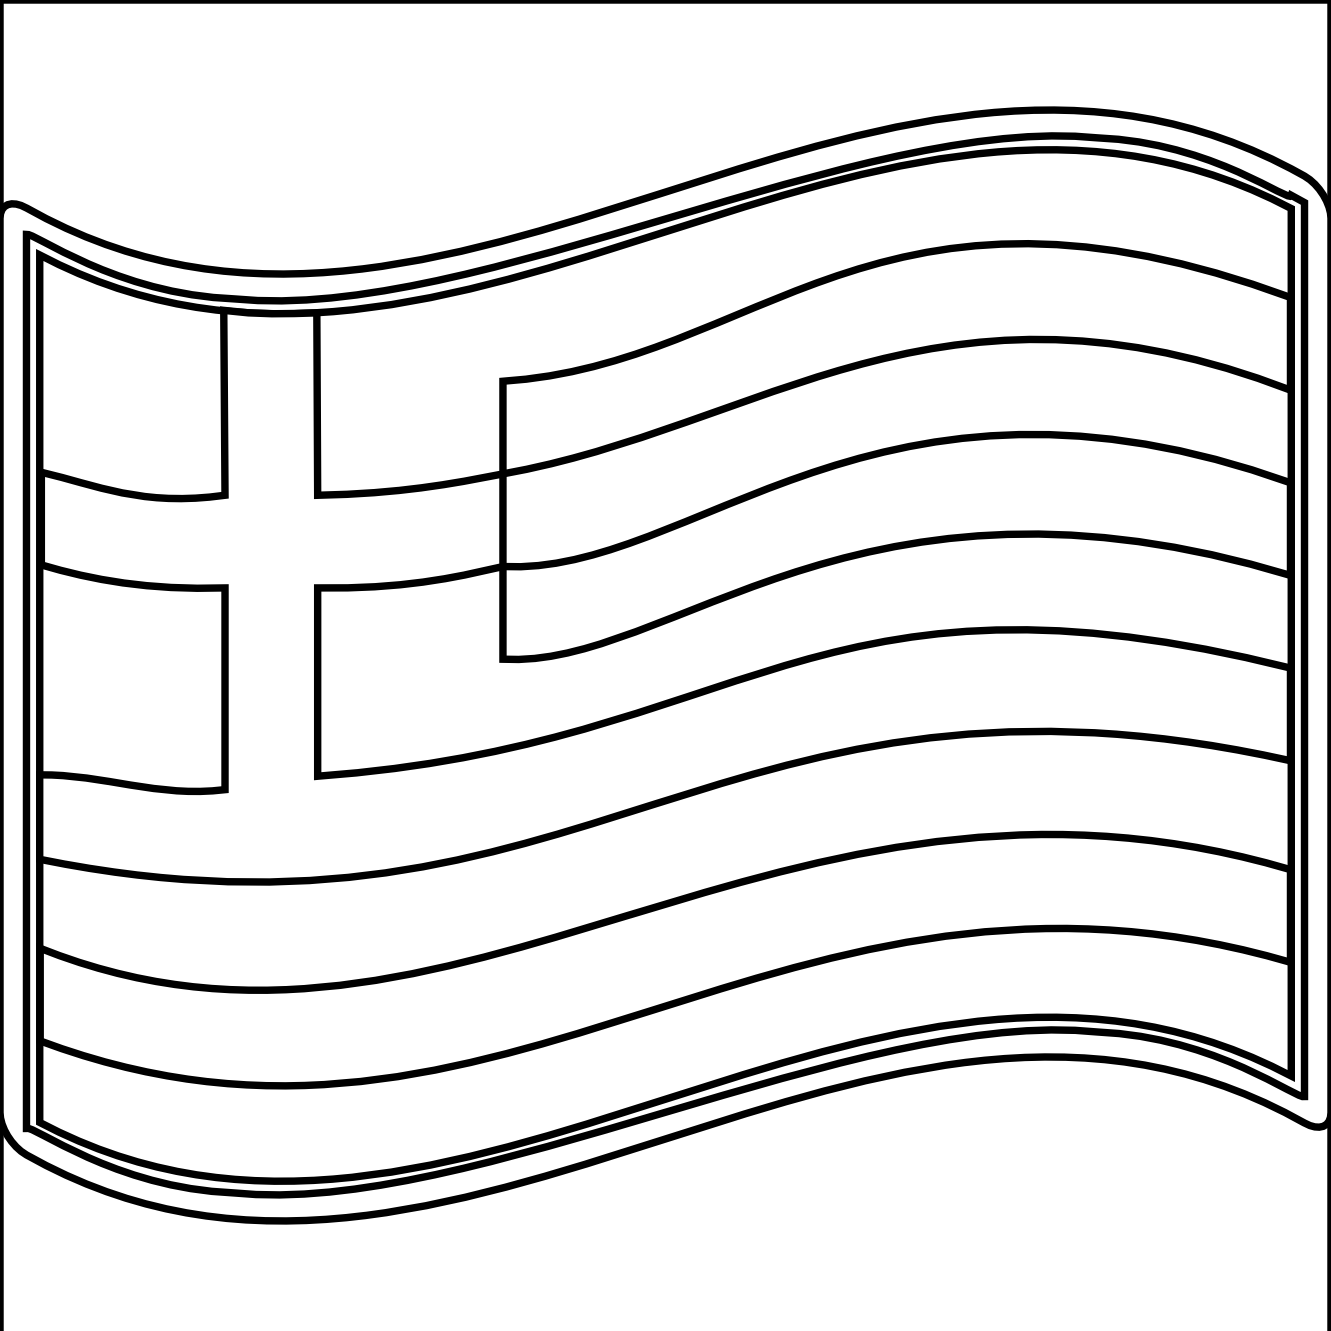 greek flag colouring page coloring flag greece business for kids greece colouring flag page greek